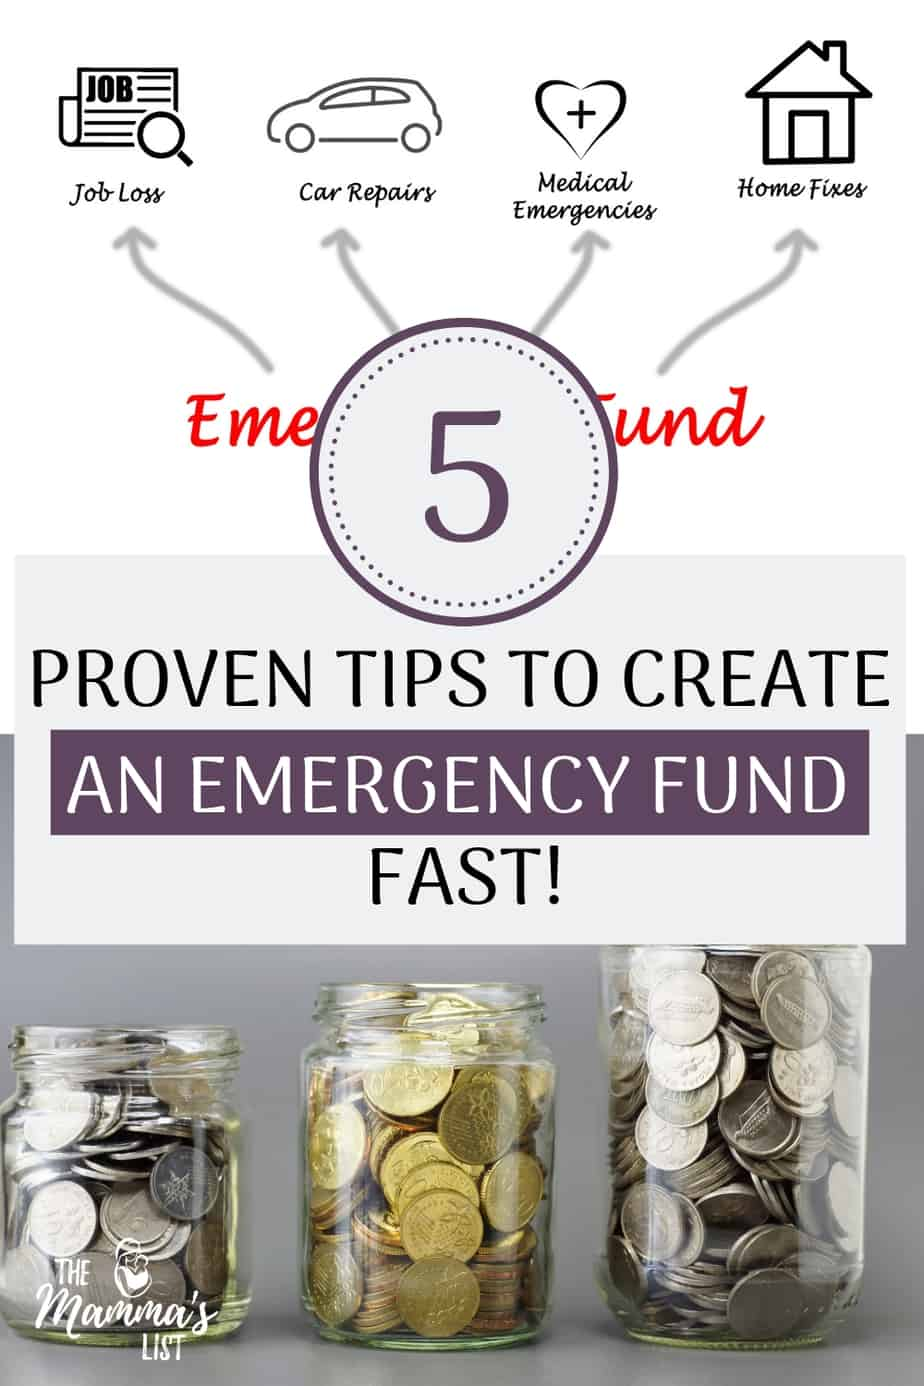 Five strategies guaranteed to help you save money and build an emergency fund fast. Take away the stress and worry from finances by beginning your emergency fund now! Check out the five tips we used to save over six months of living expenses in less than a year!